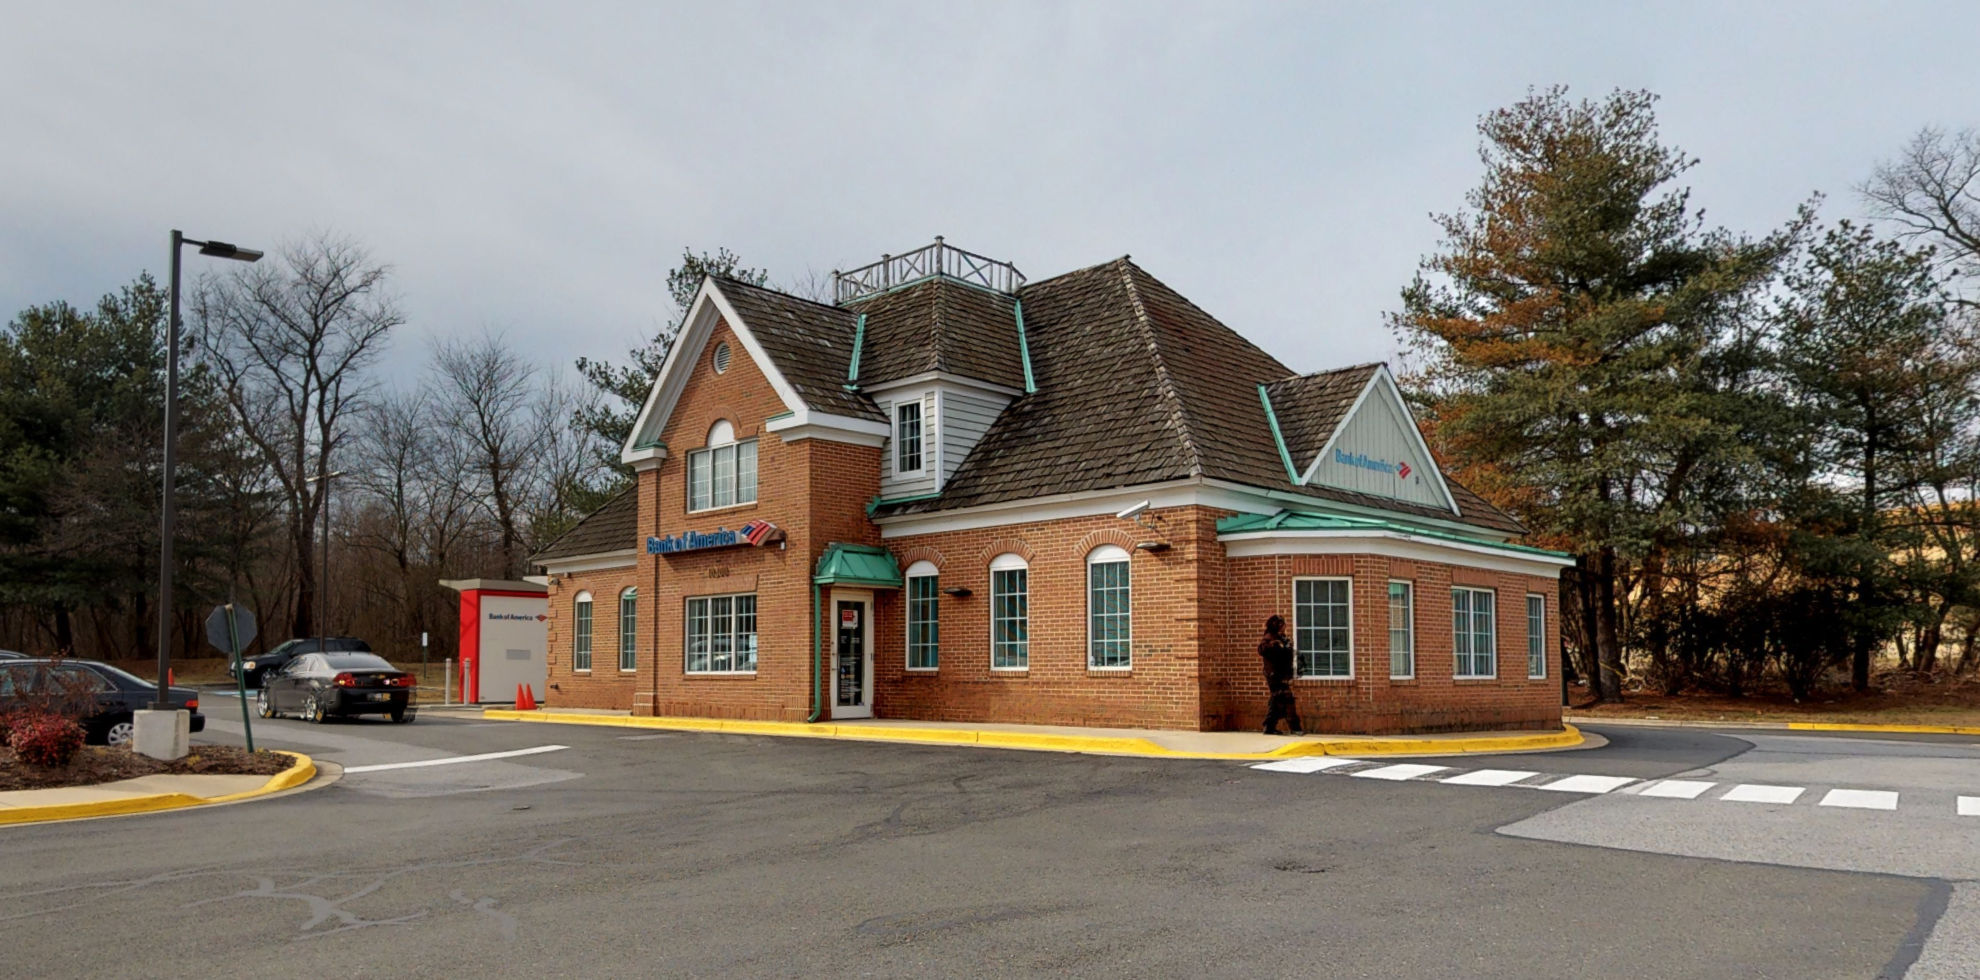 Bank of America financial center with drive-thru ATM   10200 Lake Arbor Way, Mitchellville, MD 20721